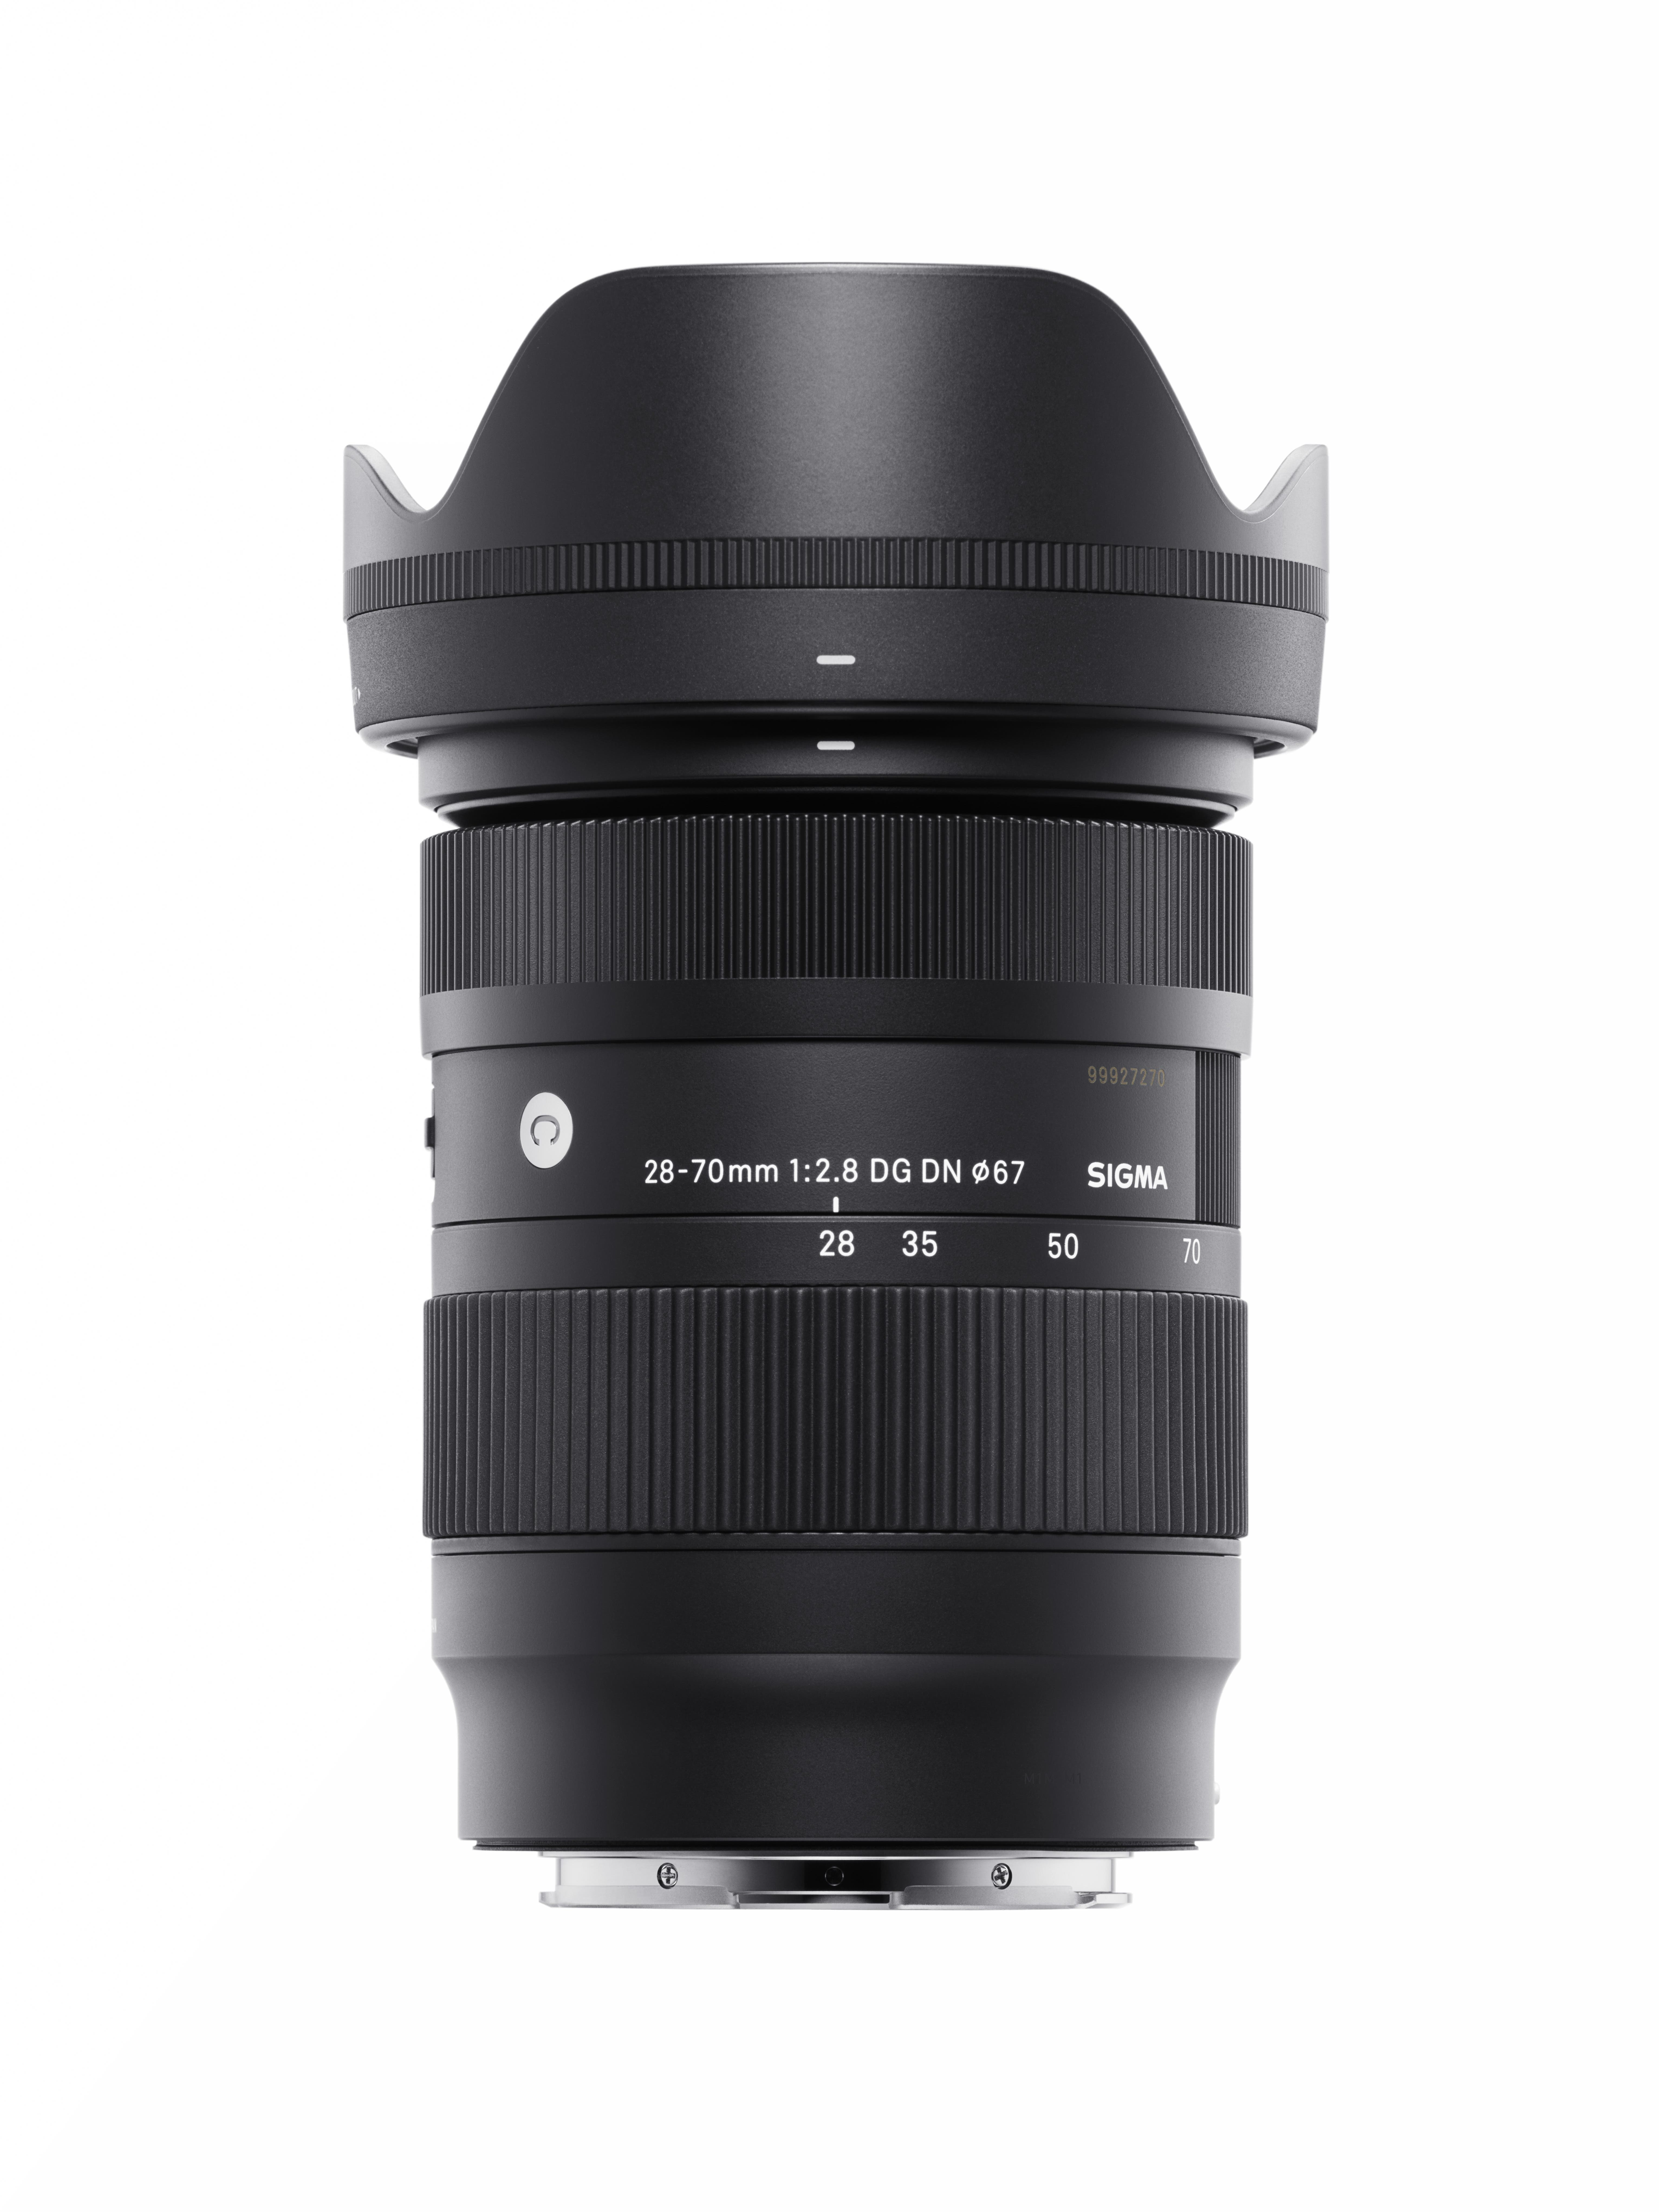 Is The Sigma 28-70mm F2.8 DG DN Contemporary Too Cheap?